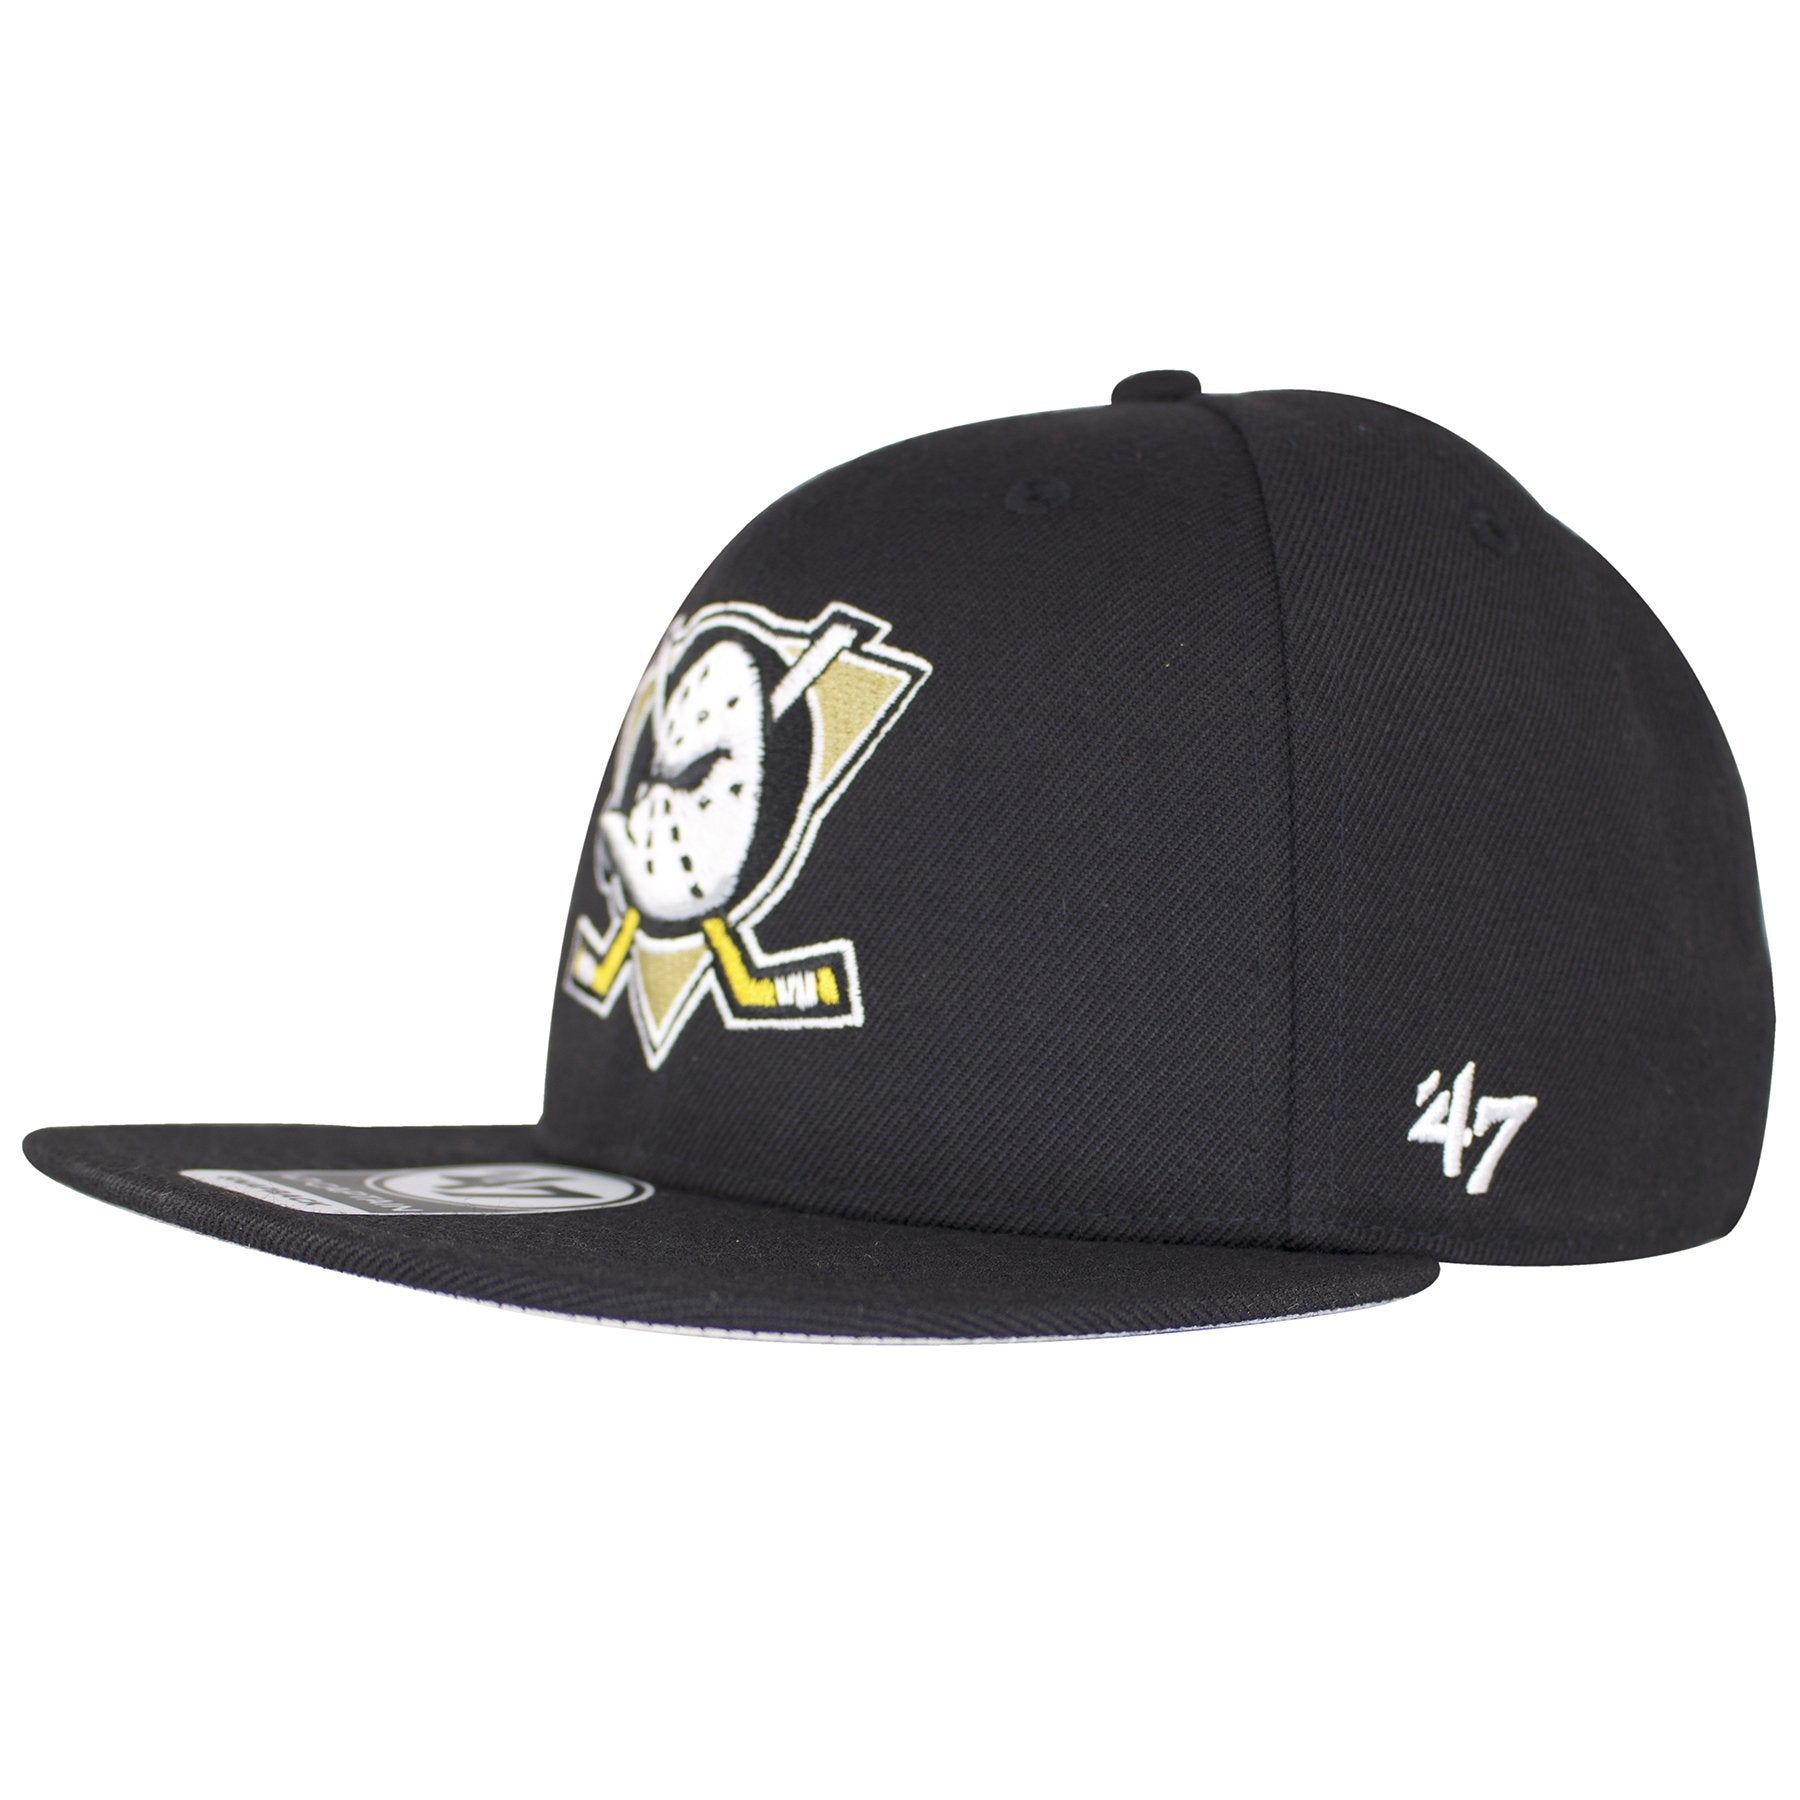 624a71469 Anaheim Mighty Ducks Retro Vintage Black Snapback